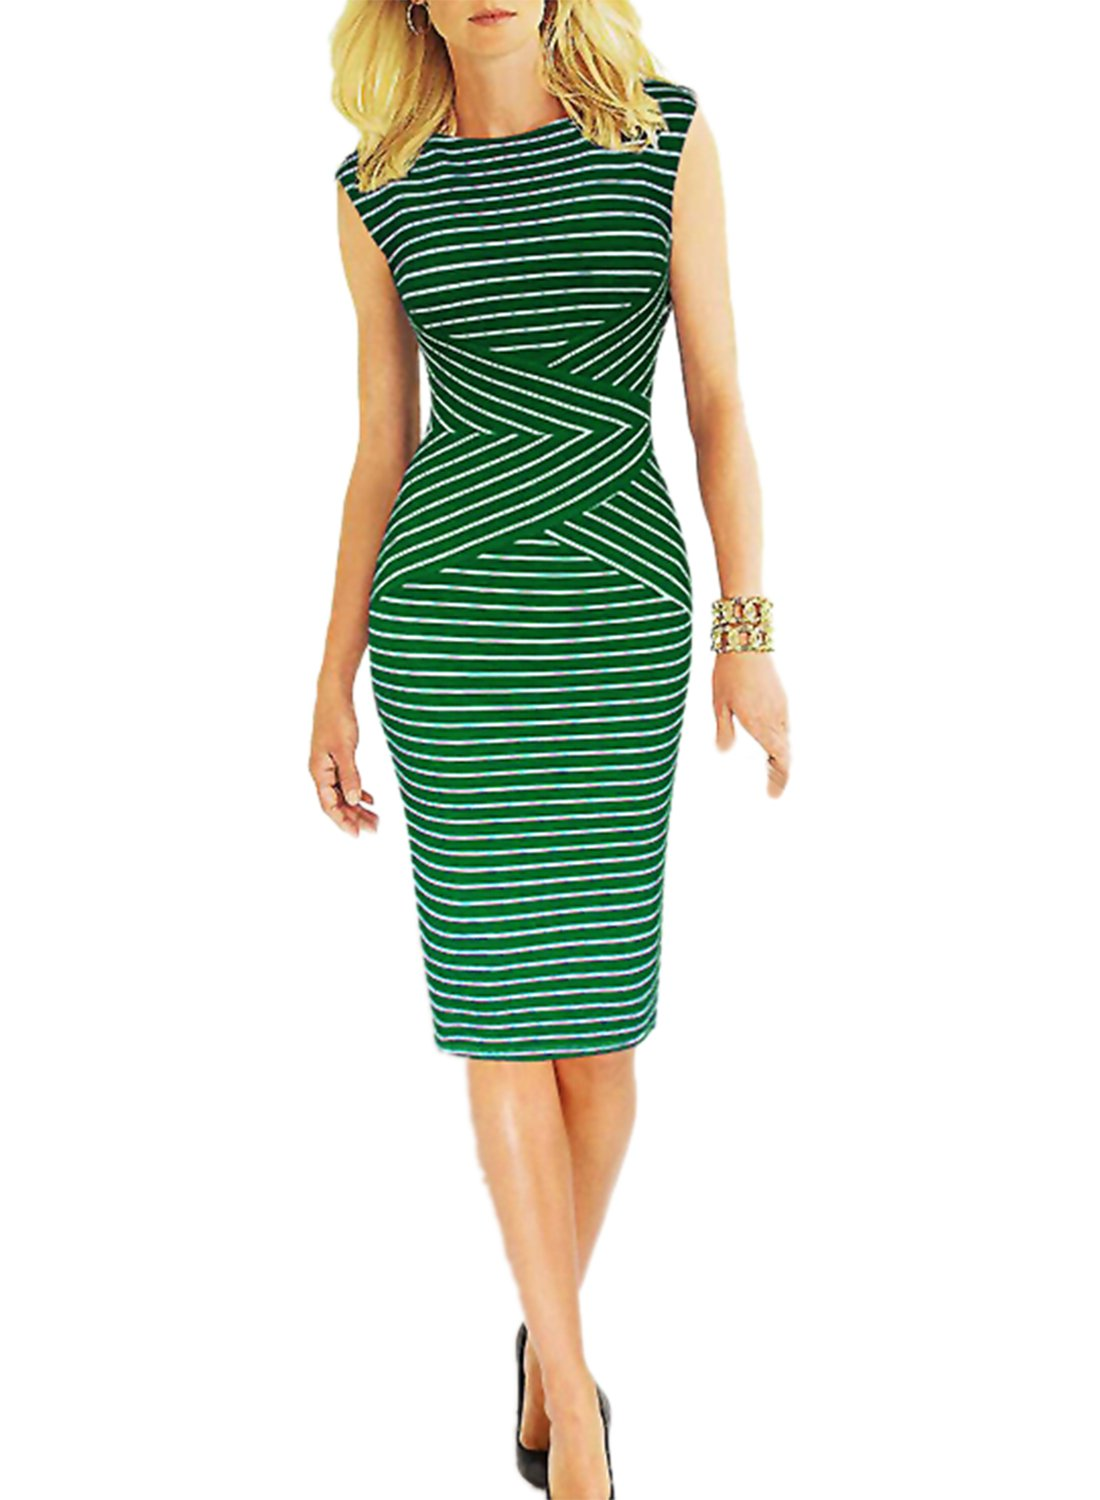 Viwenni Women's Summer Striped Sleeveless Wear to Work Casual Party Pencil Dress,Small,Green